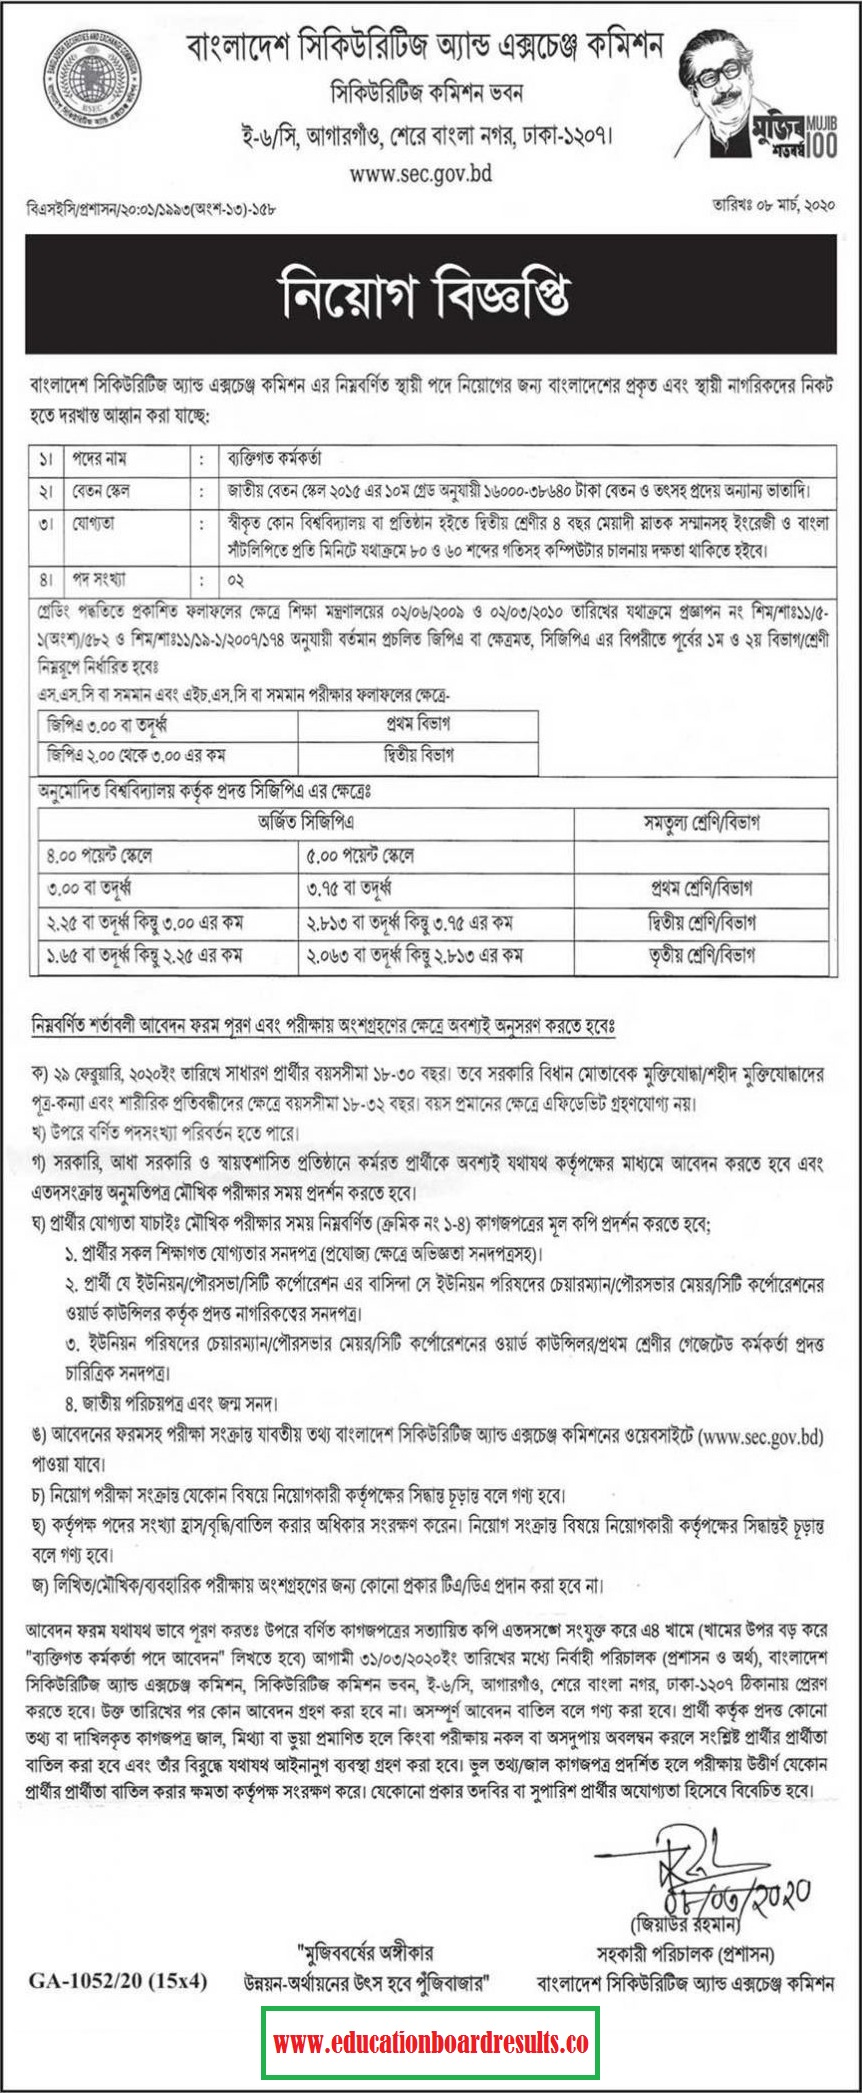 Bangladesh Securities and Exchange Commission Private Officers Job Circular 2020